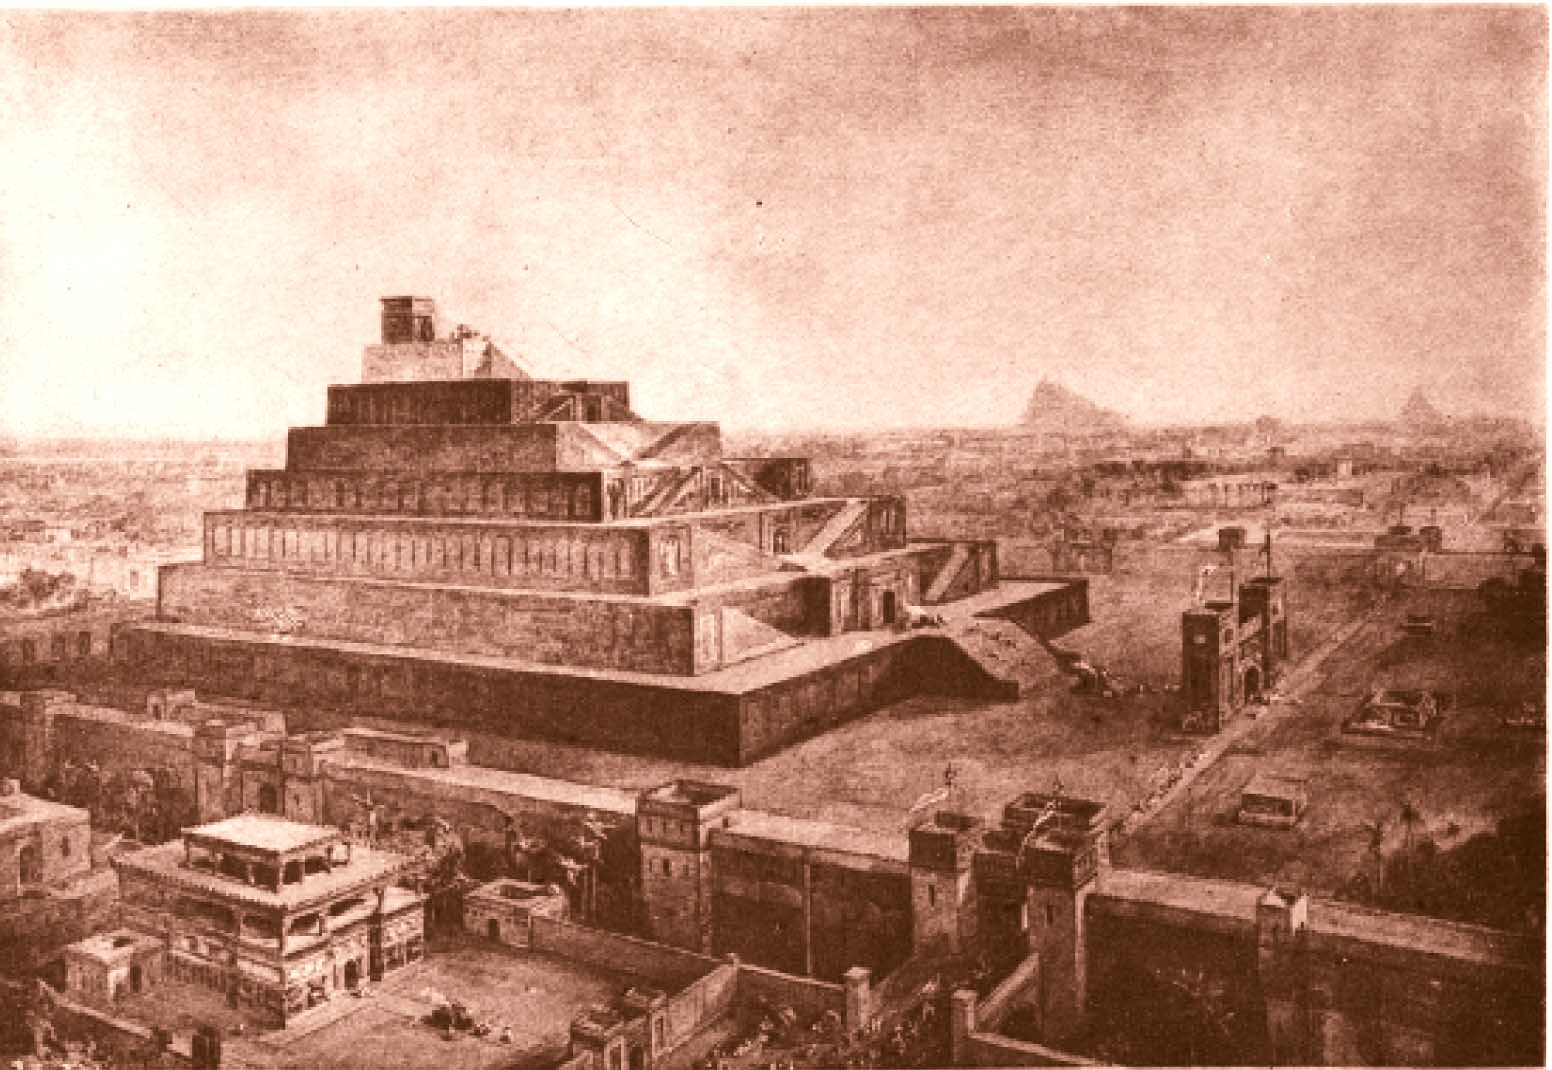 Turnul Babel, în The Sacred Books and Early Literature of the Est, Austin, 1915